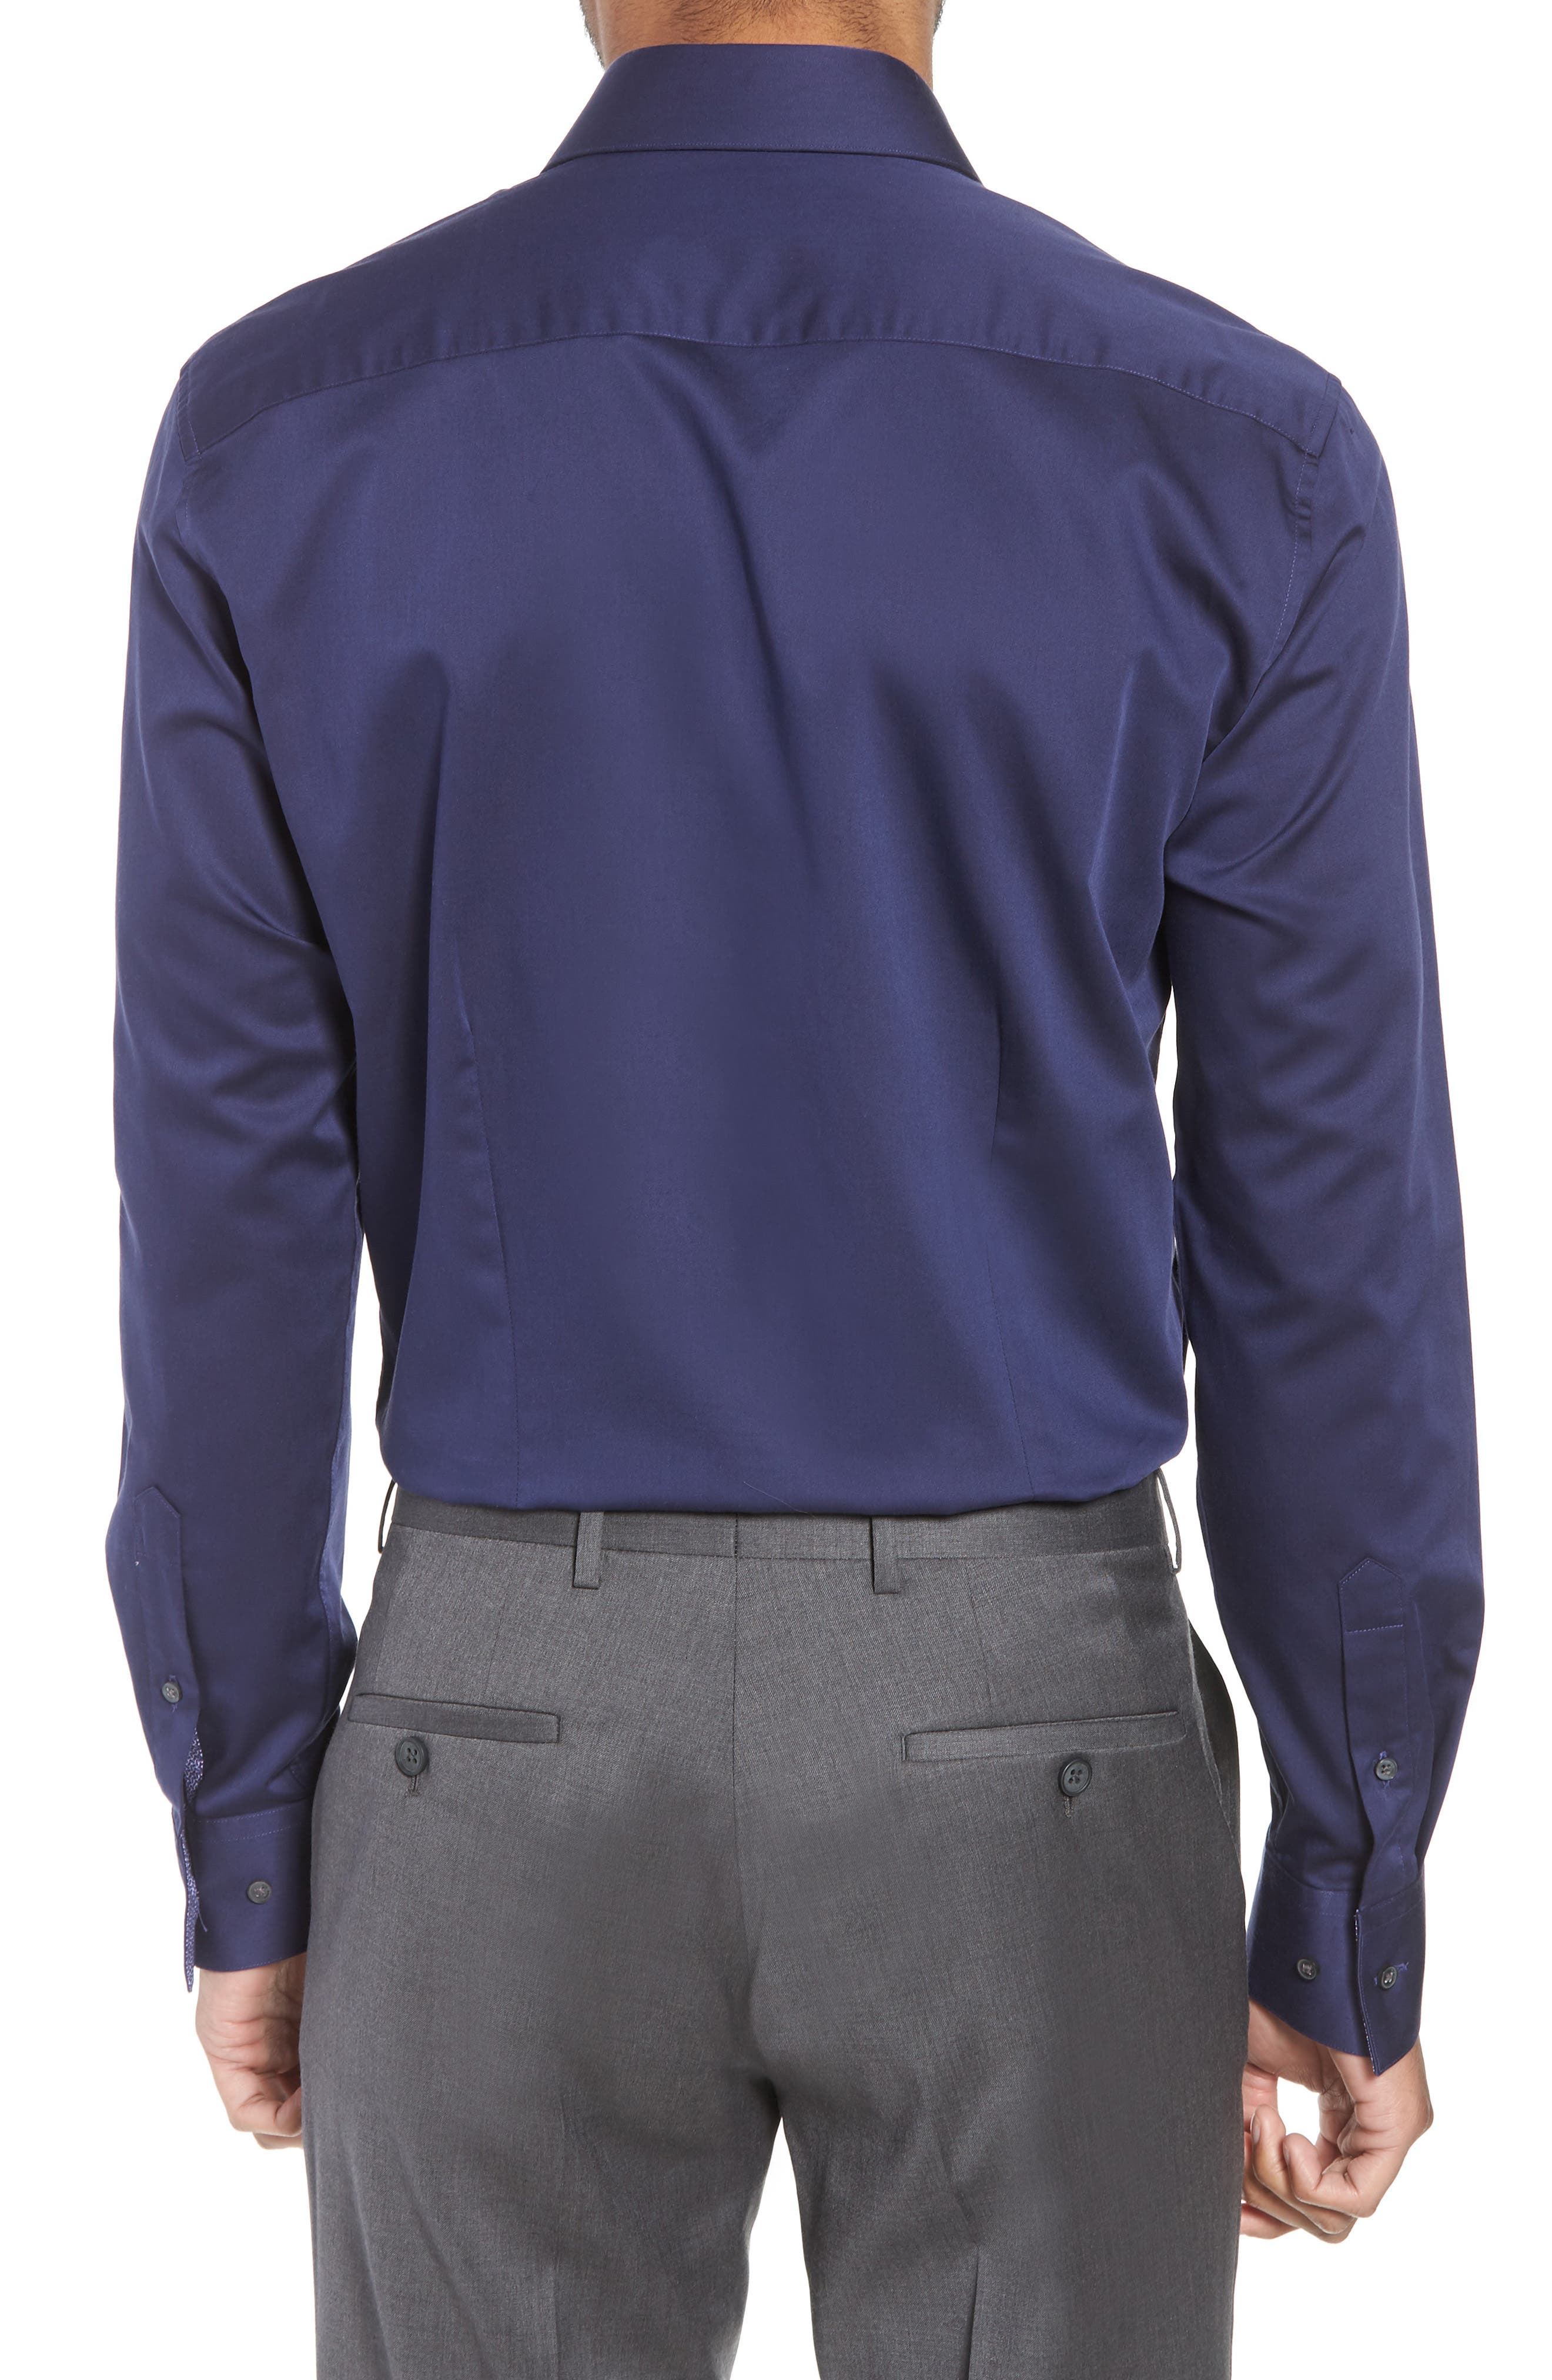 Endurance Bookers Slim Fit Solid Dress Shirt,                             Alternate thumbnail 9, color,